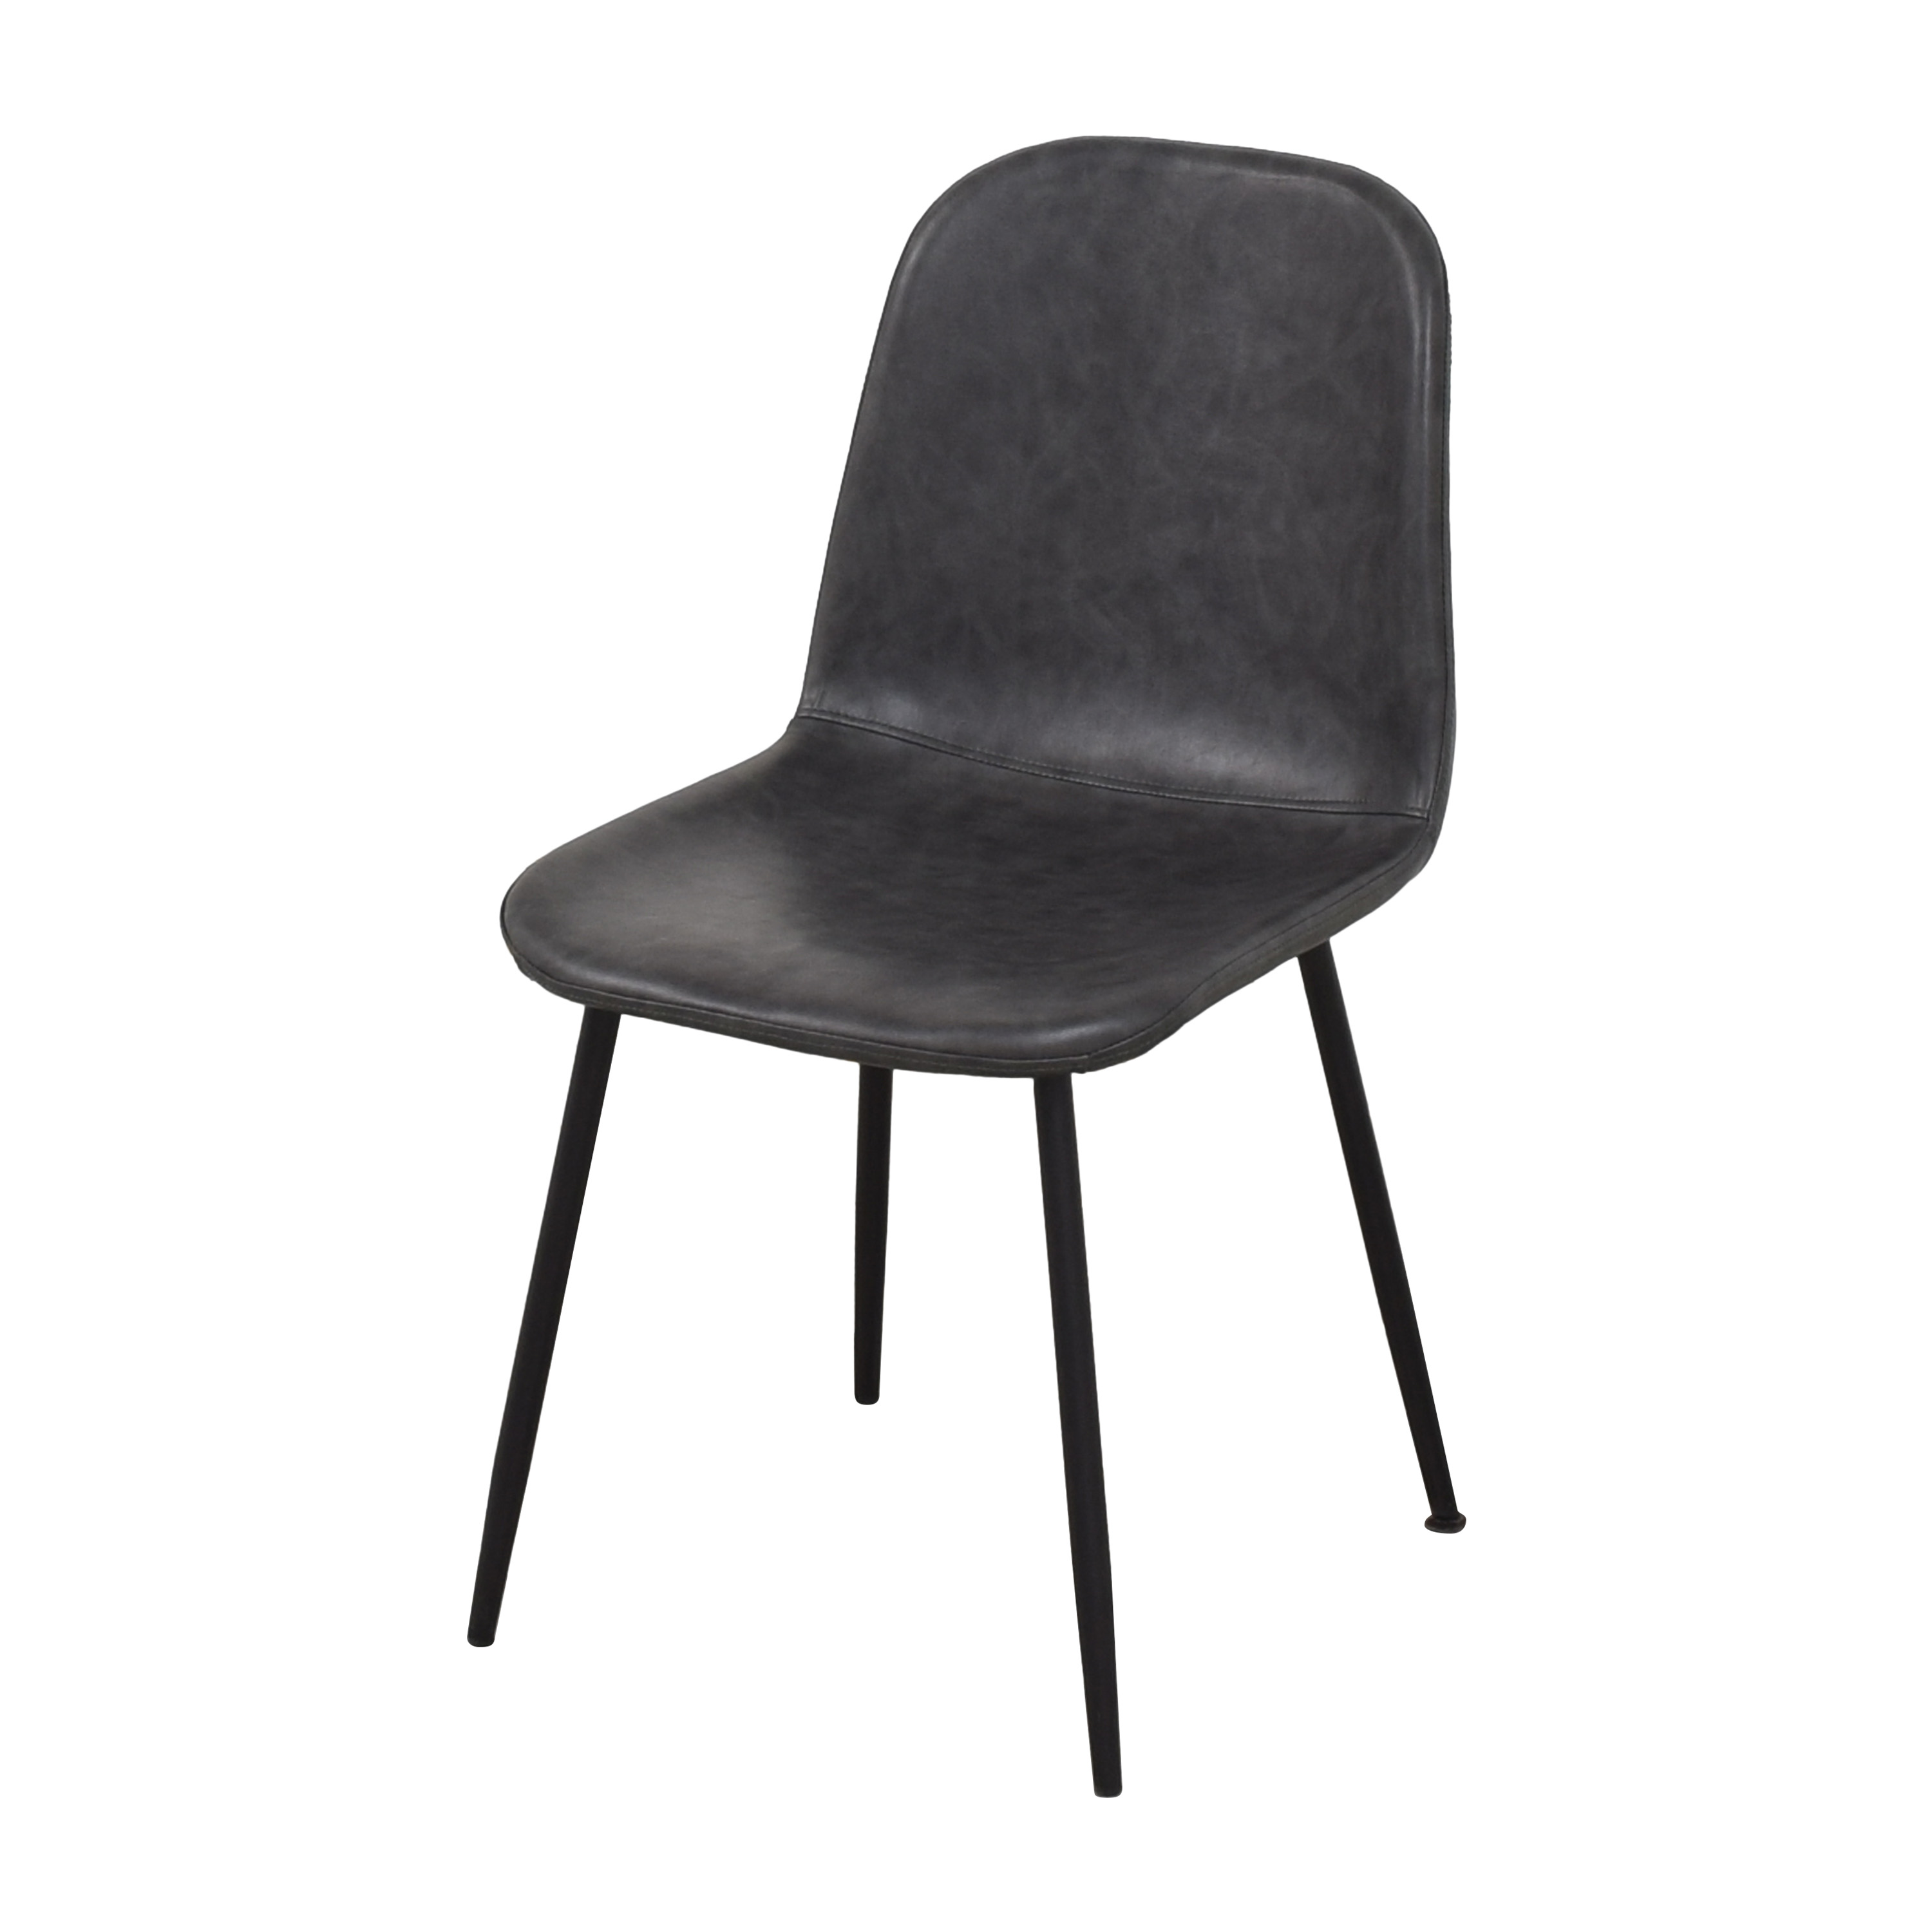 Mid-Century Modern Style Dining Chairs Dining Chairs